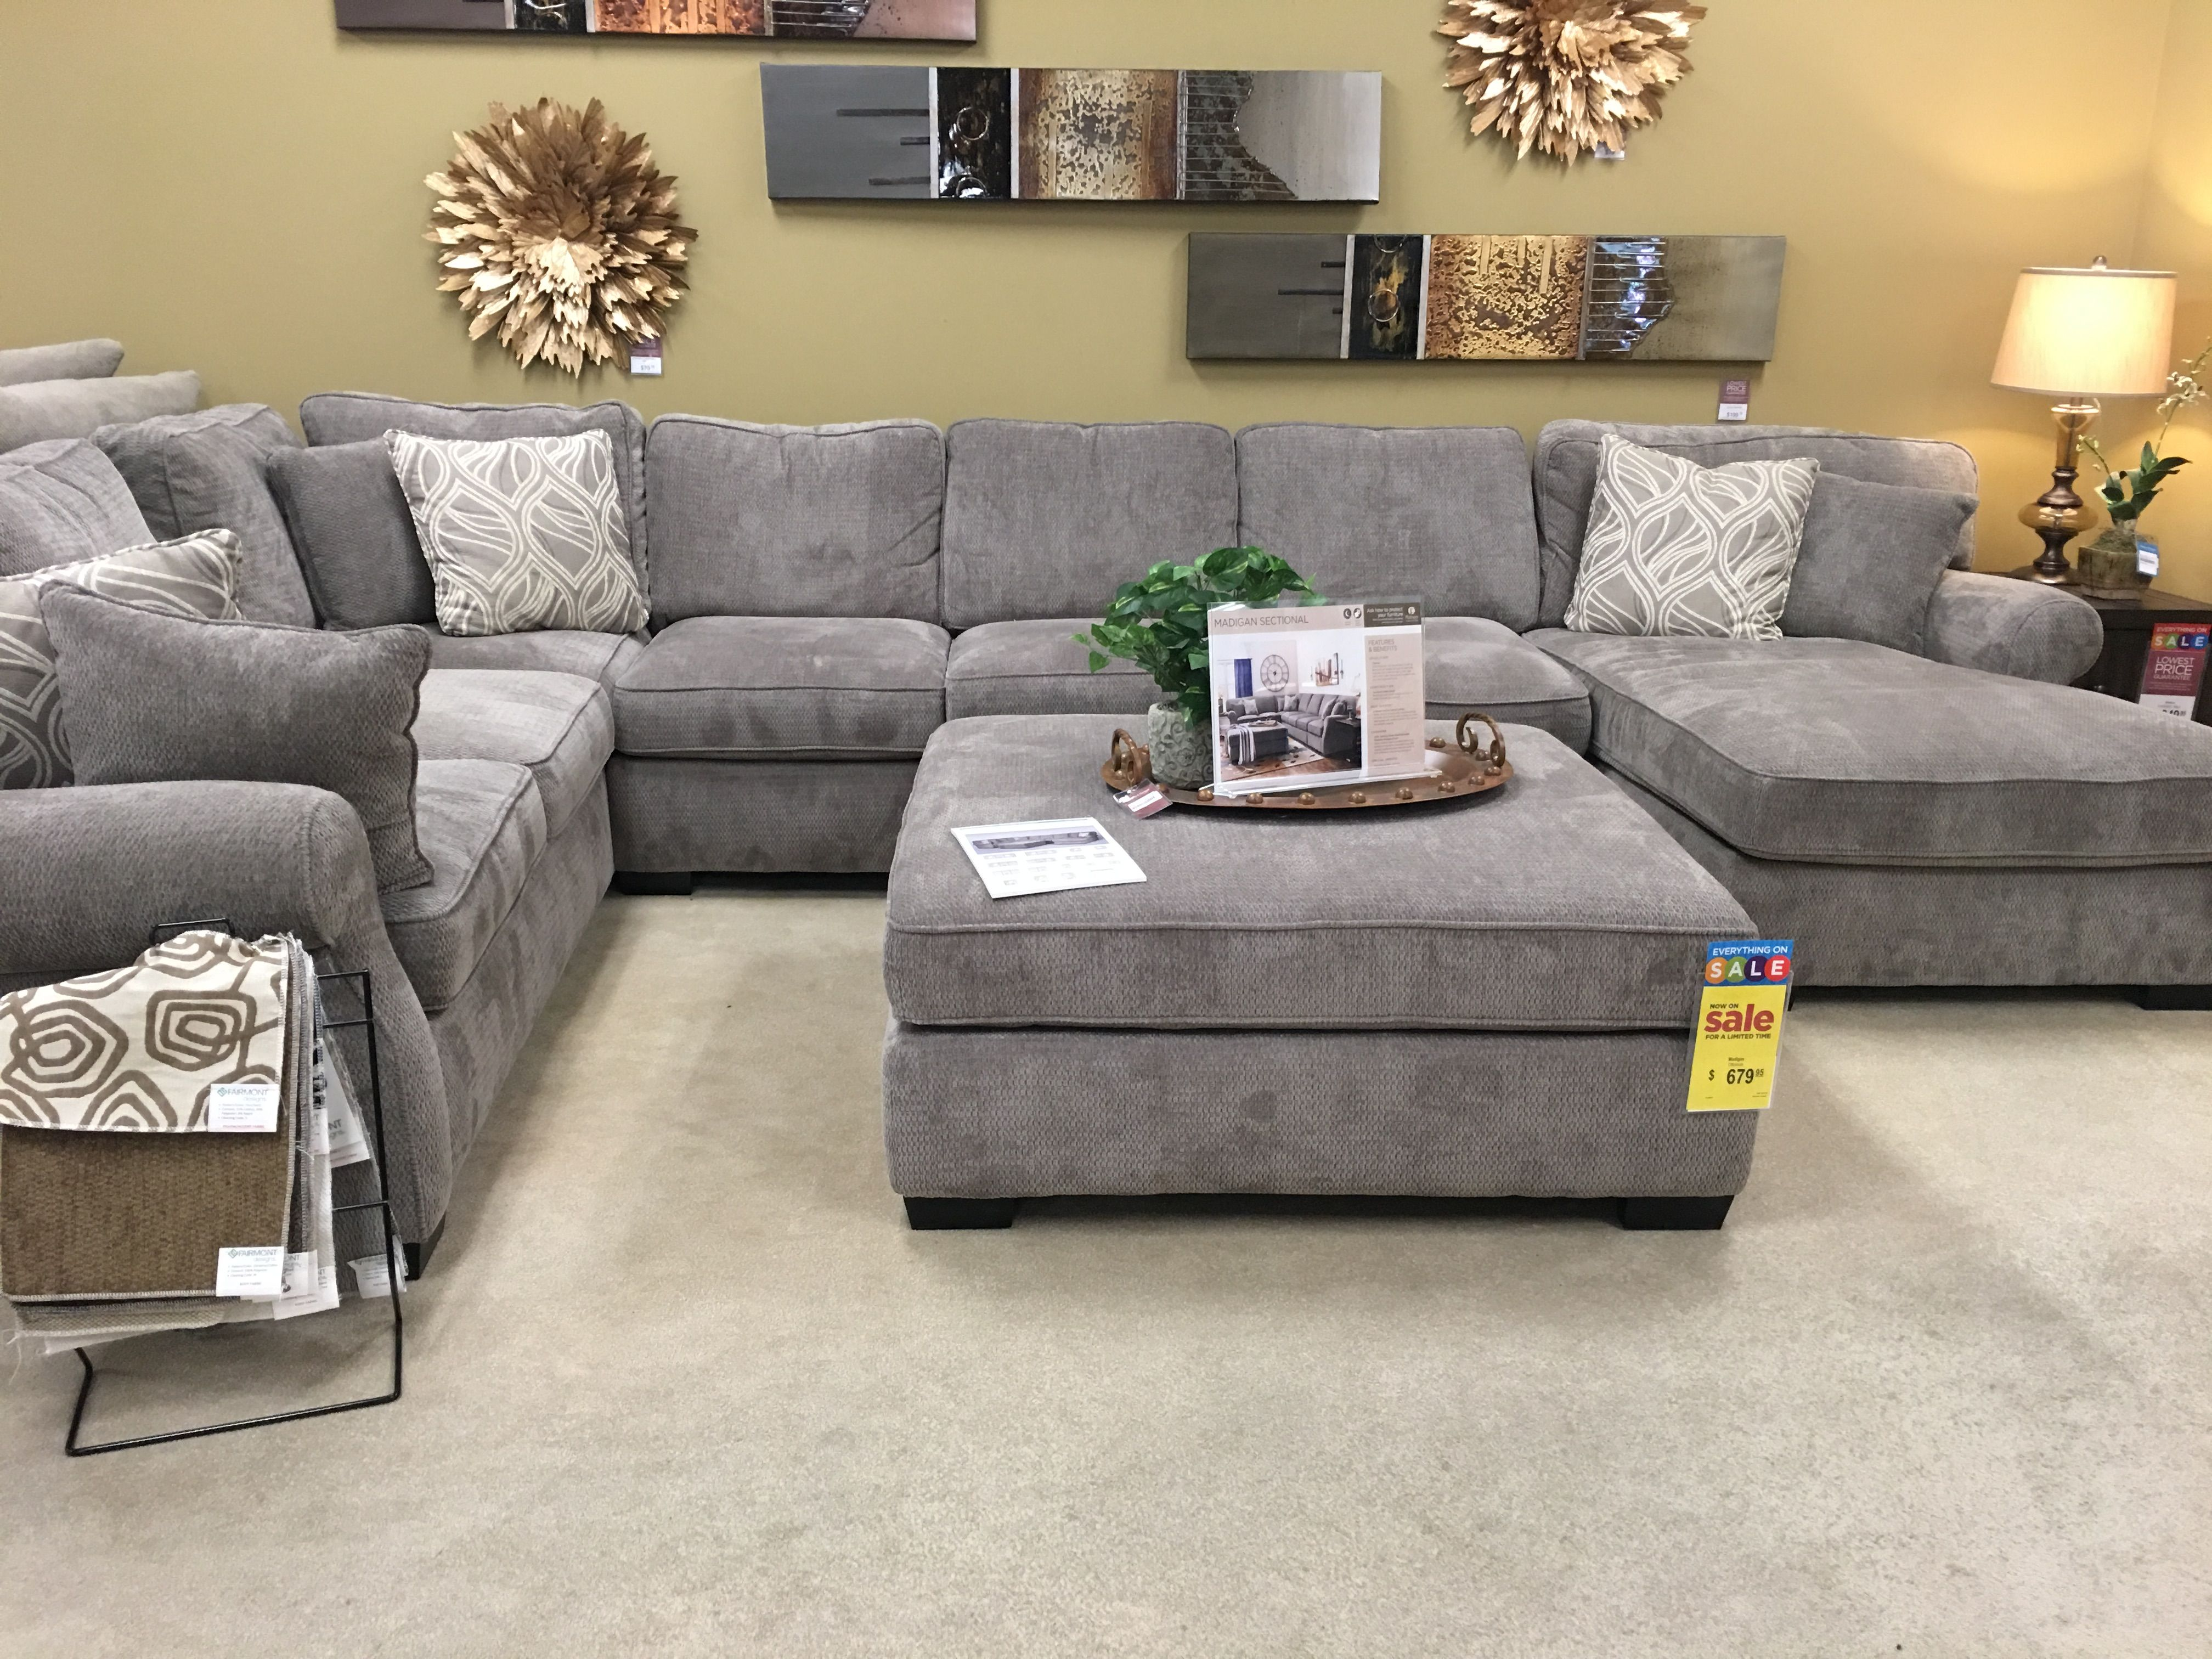 Tremendous Beautiful Soft And Comfortable Sectional From Raymore And Lamtechconsult Wood Chair Design Ideas Lamtechconsultcom